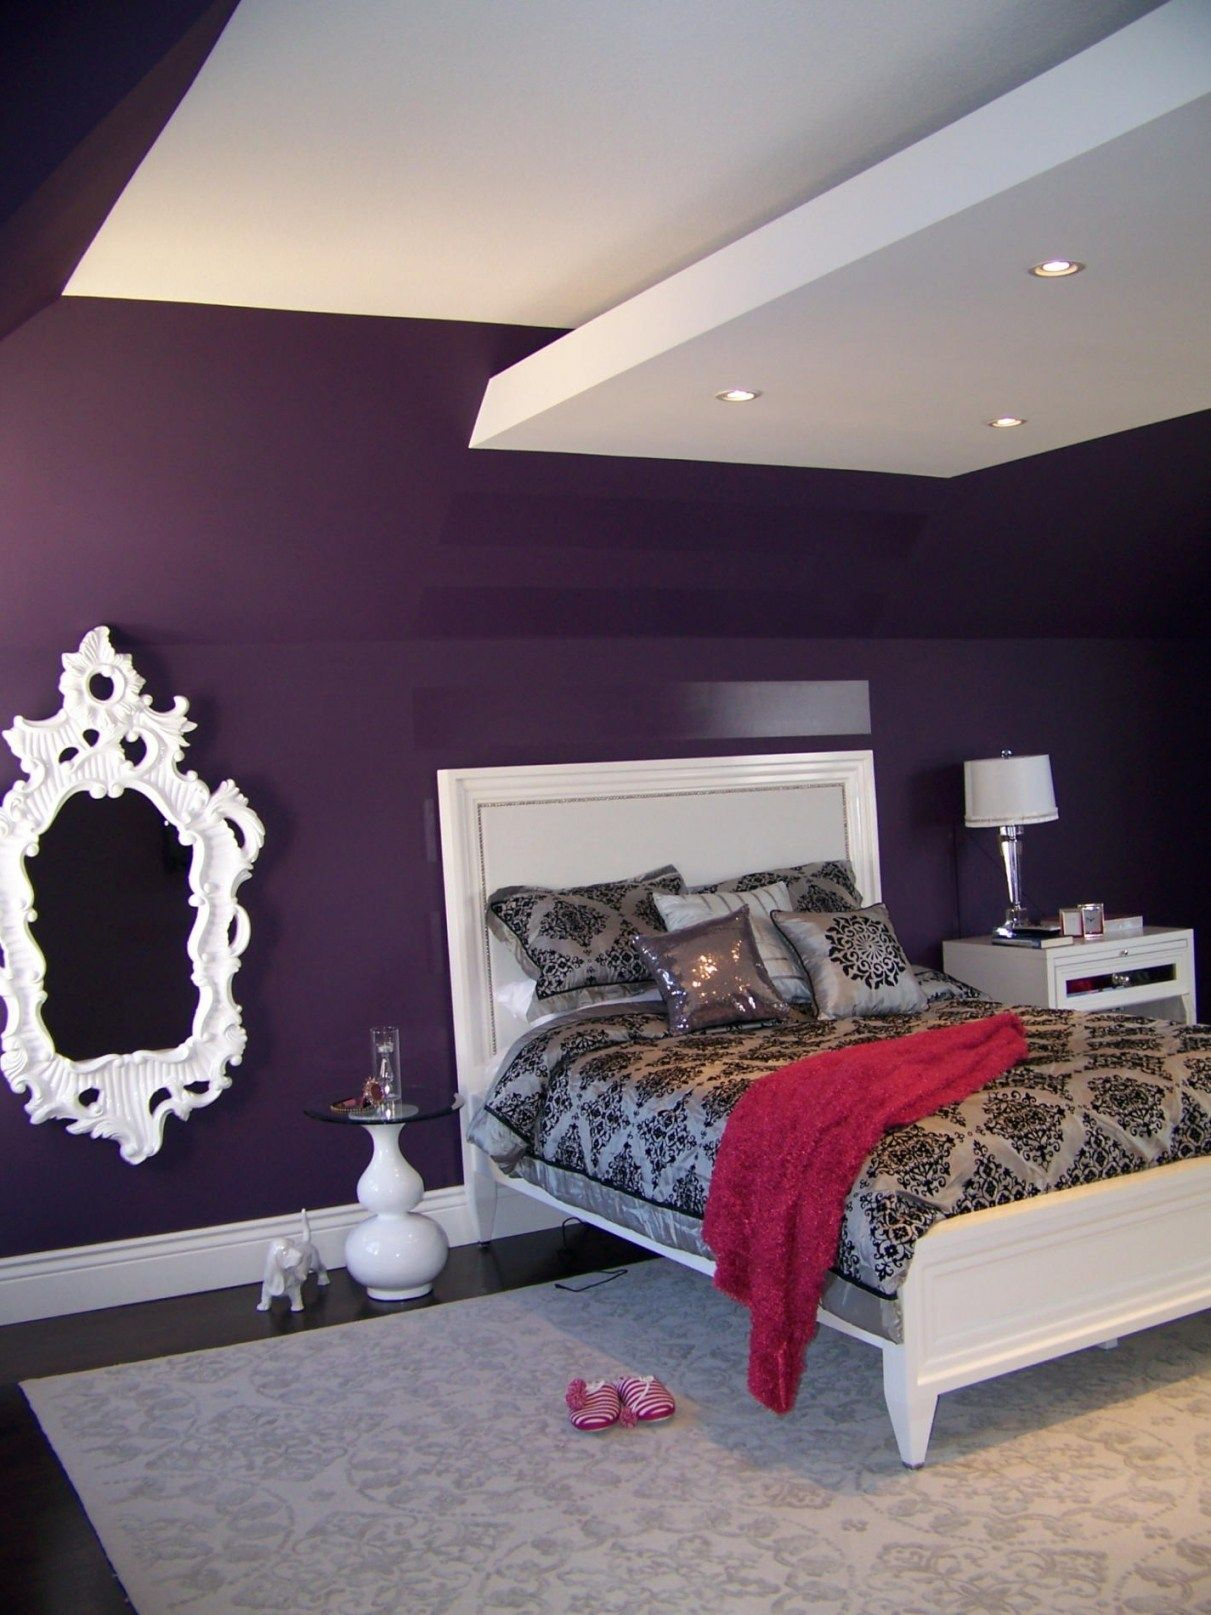 Top 10 Bedroom Paint Color Ideas Video Playlist Home Nice There Are No Other Words To Describe It